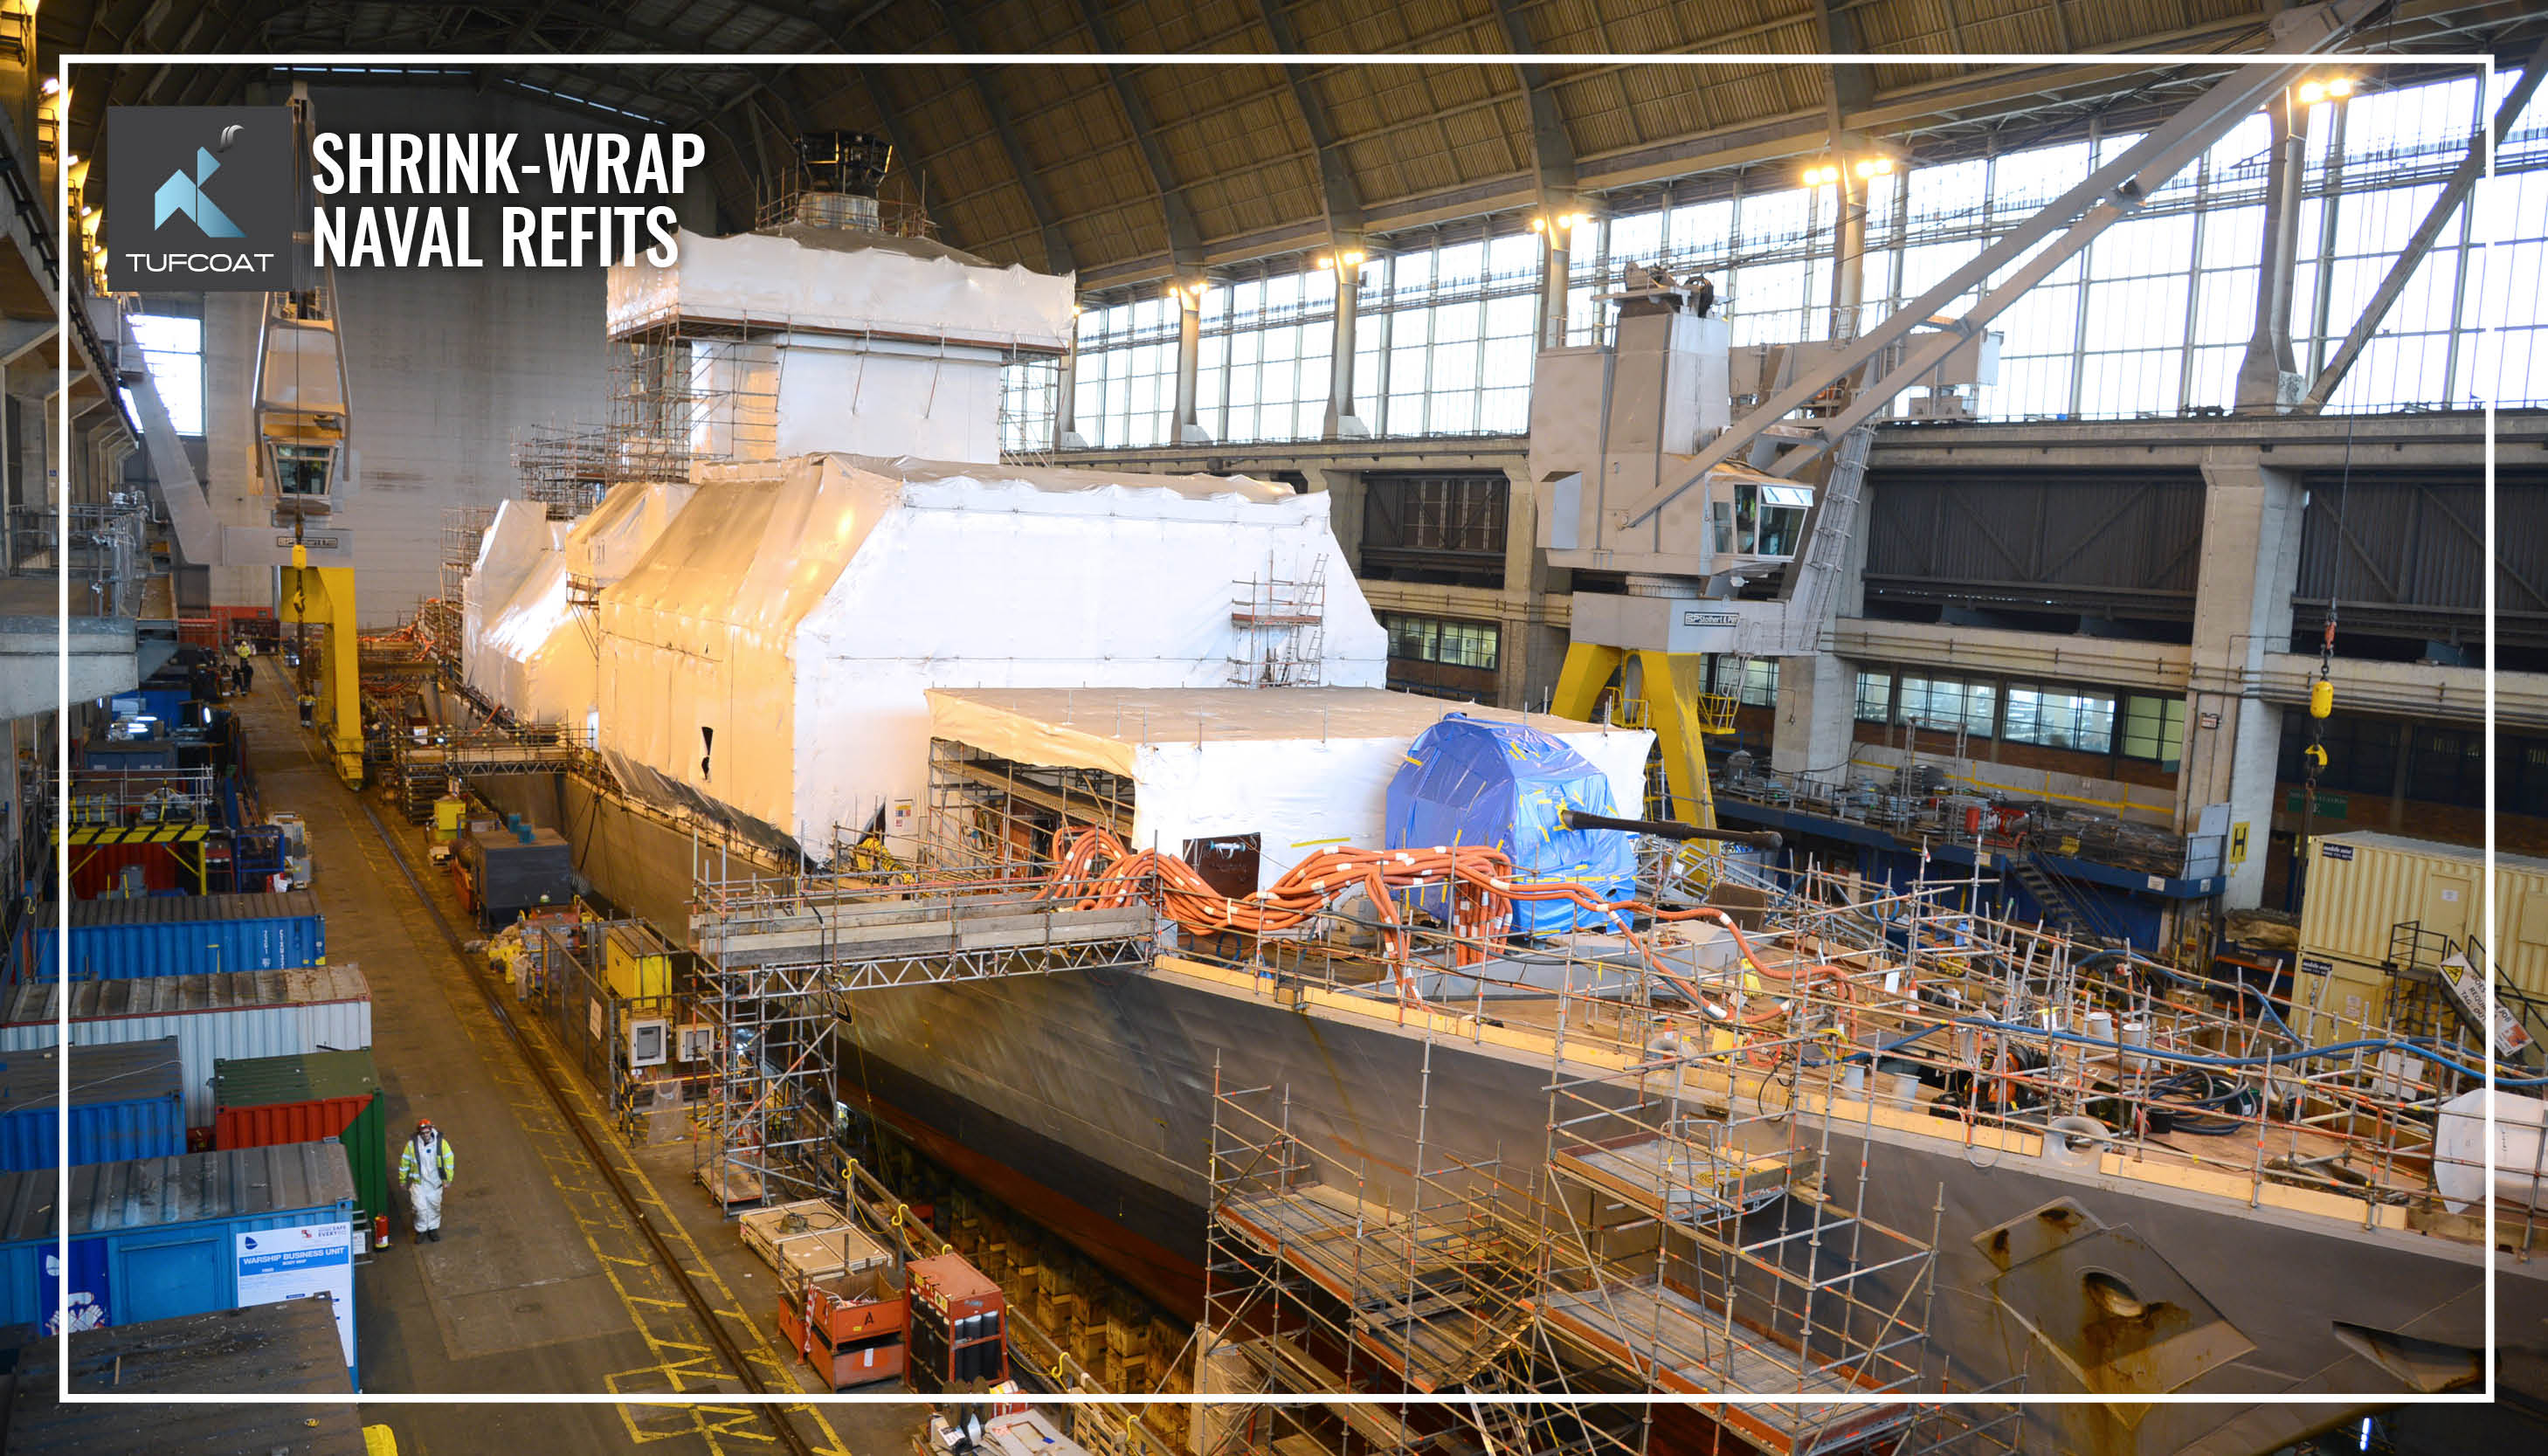 Tufcoat shrink-wrap naval refits HMS Argyll